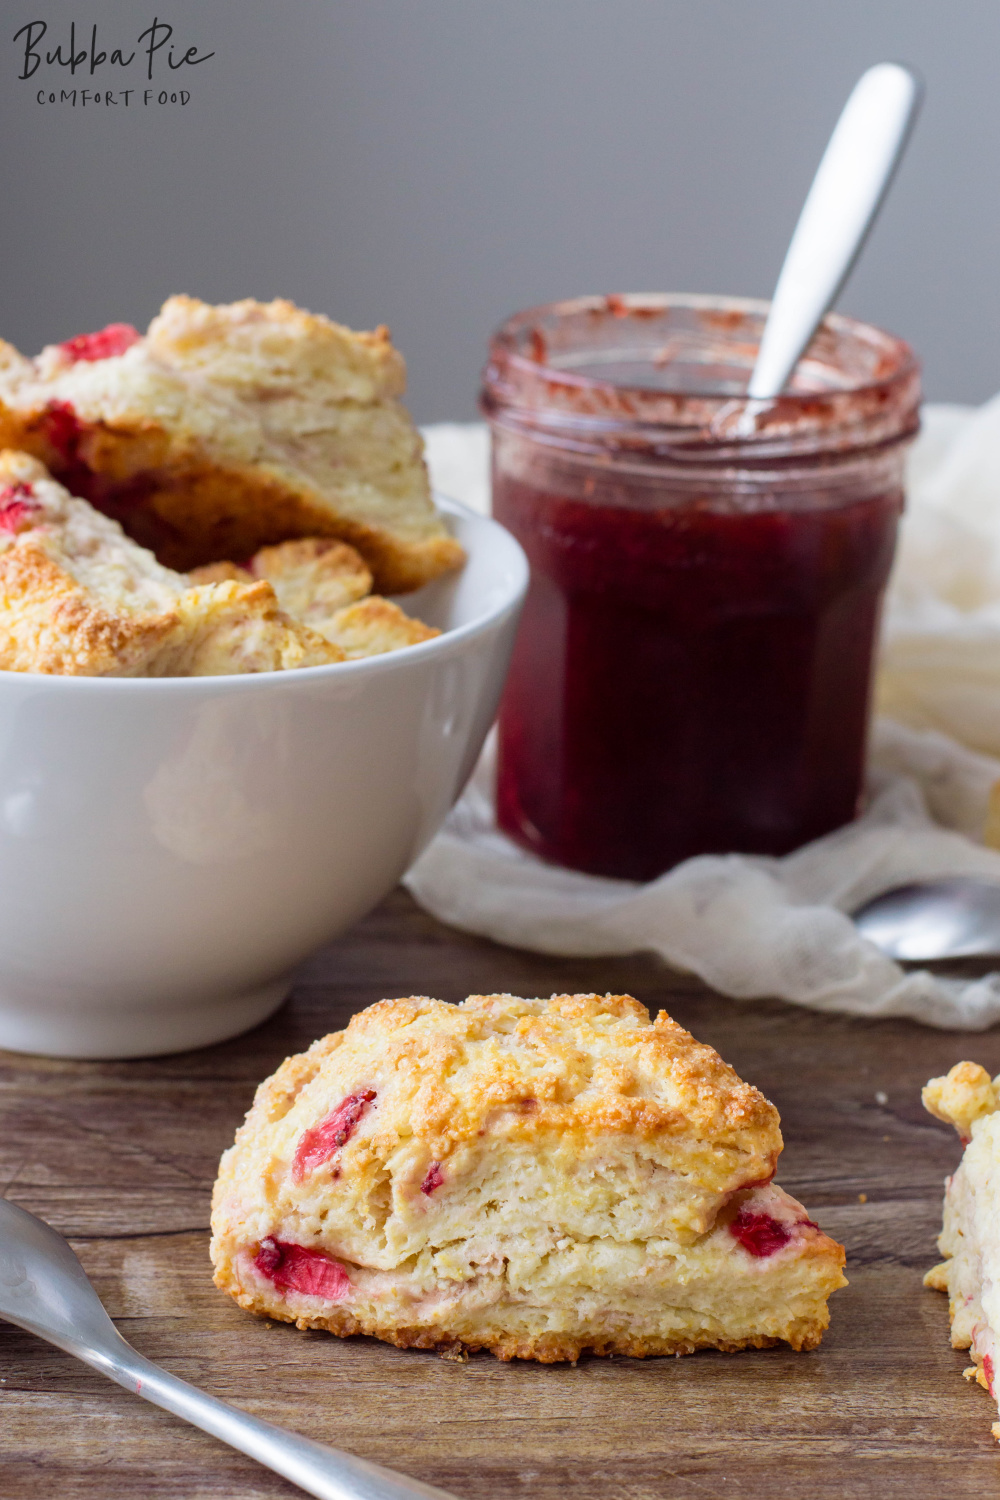 Strawberry Scones are great for brunch or a fun breakfast treat